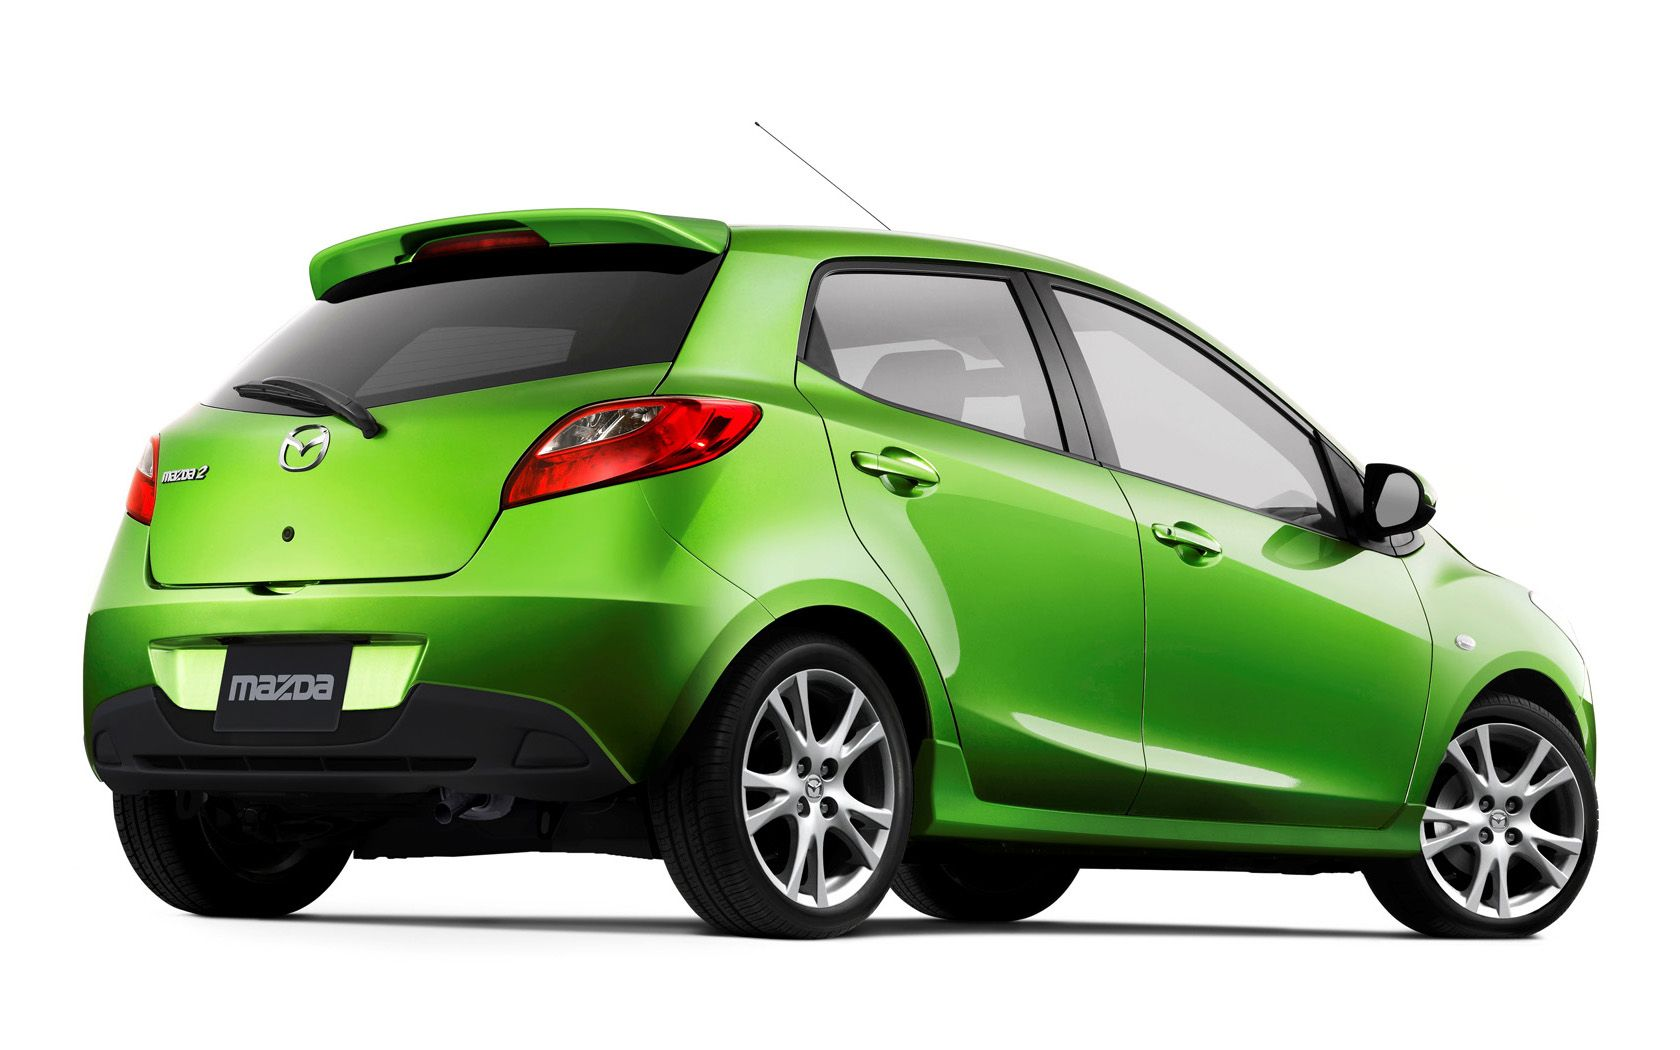 Mazda 2 Lime Green Rear Low Angle Wallpaper 1680x1050